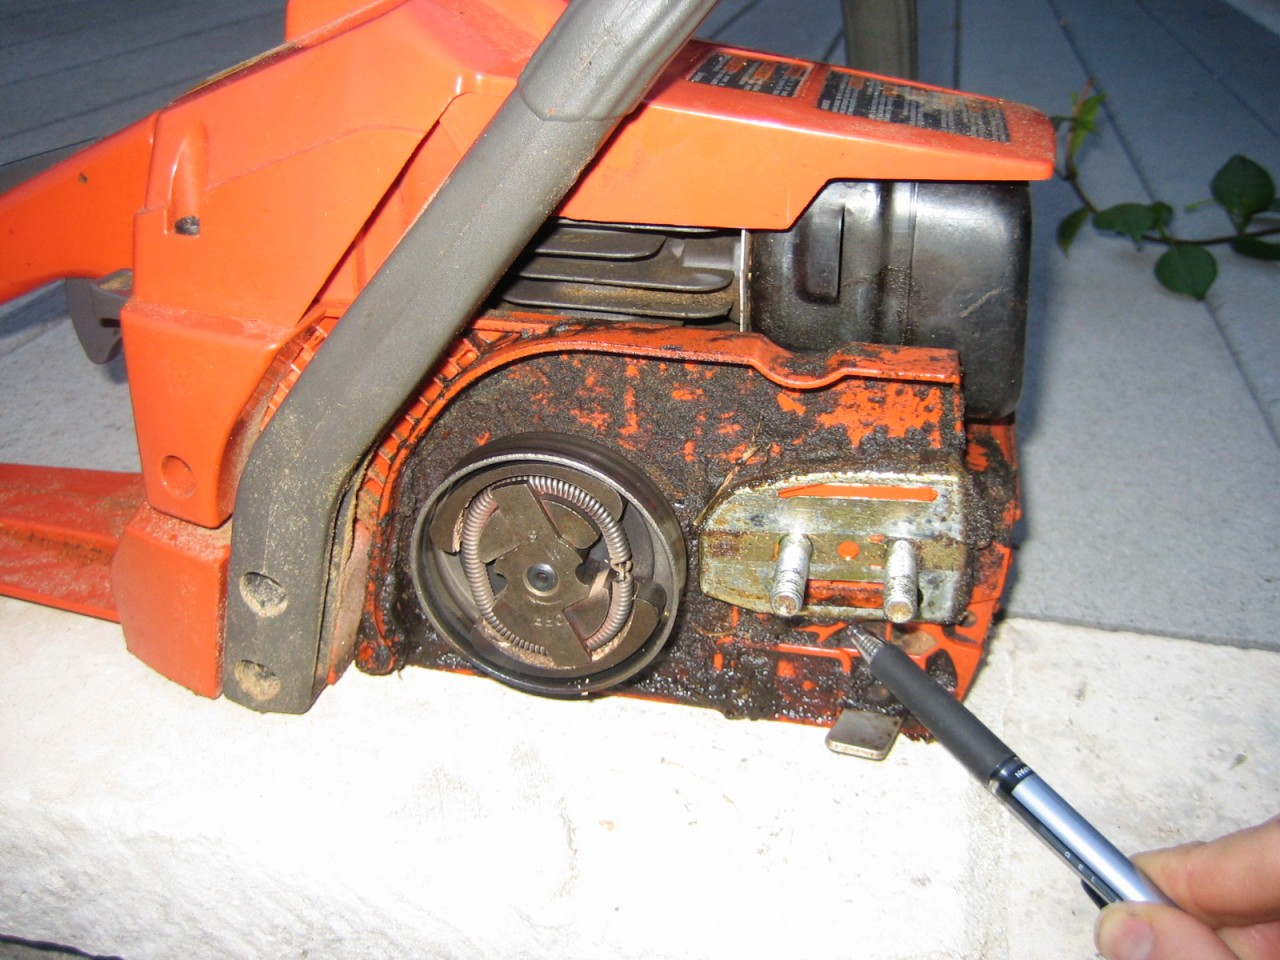 Husqvarna 141 chainsaw no oil on barchain chainsaws forum chainsaws keyboard keysfo